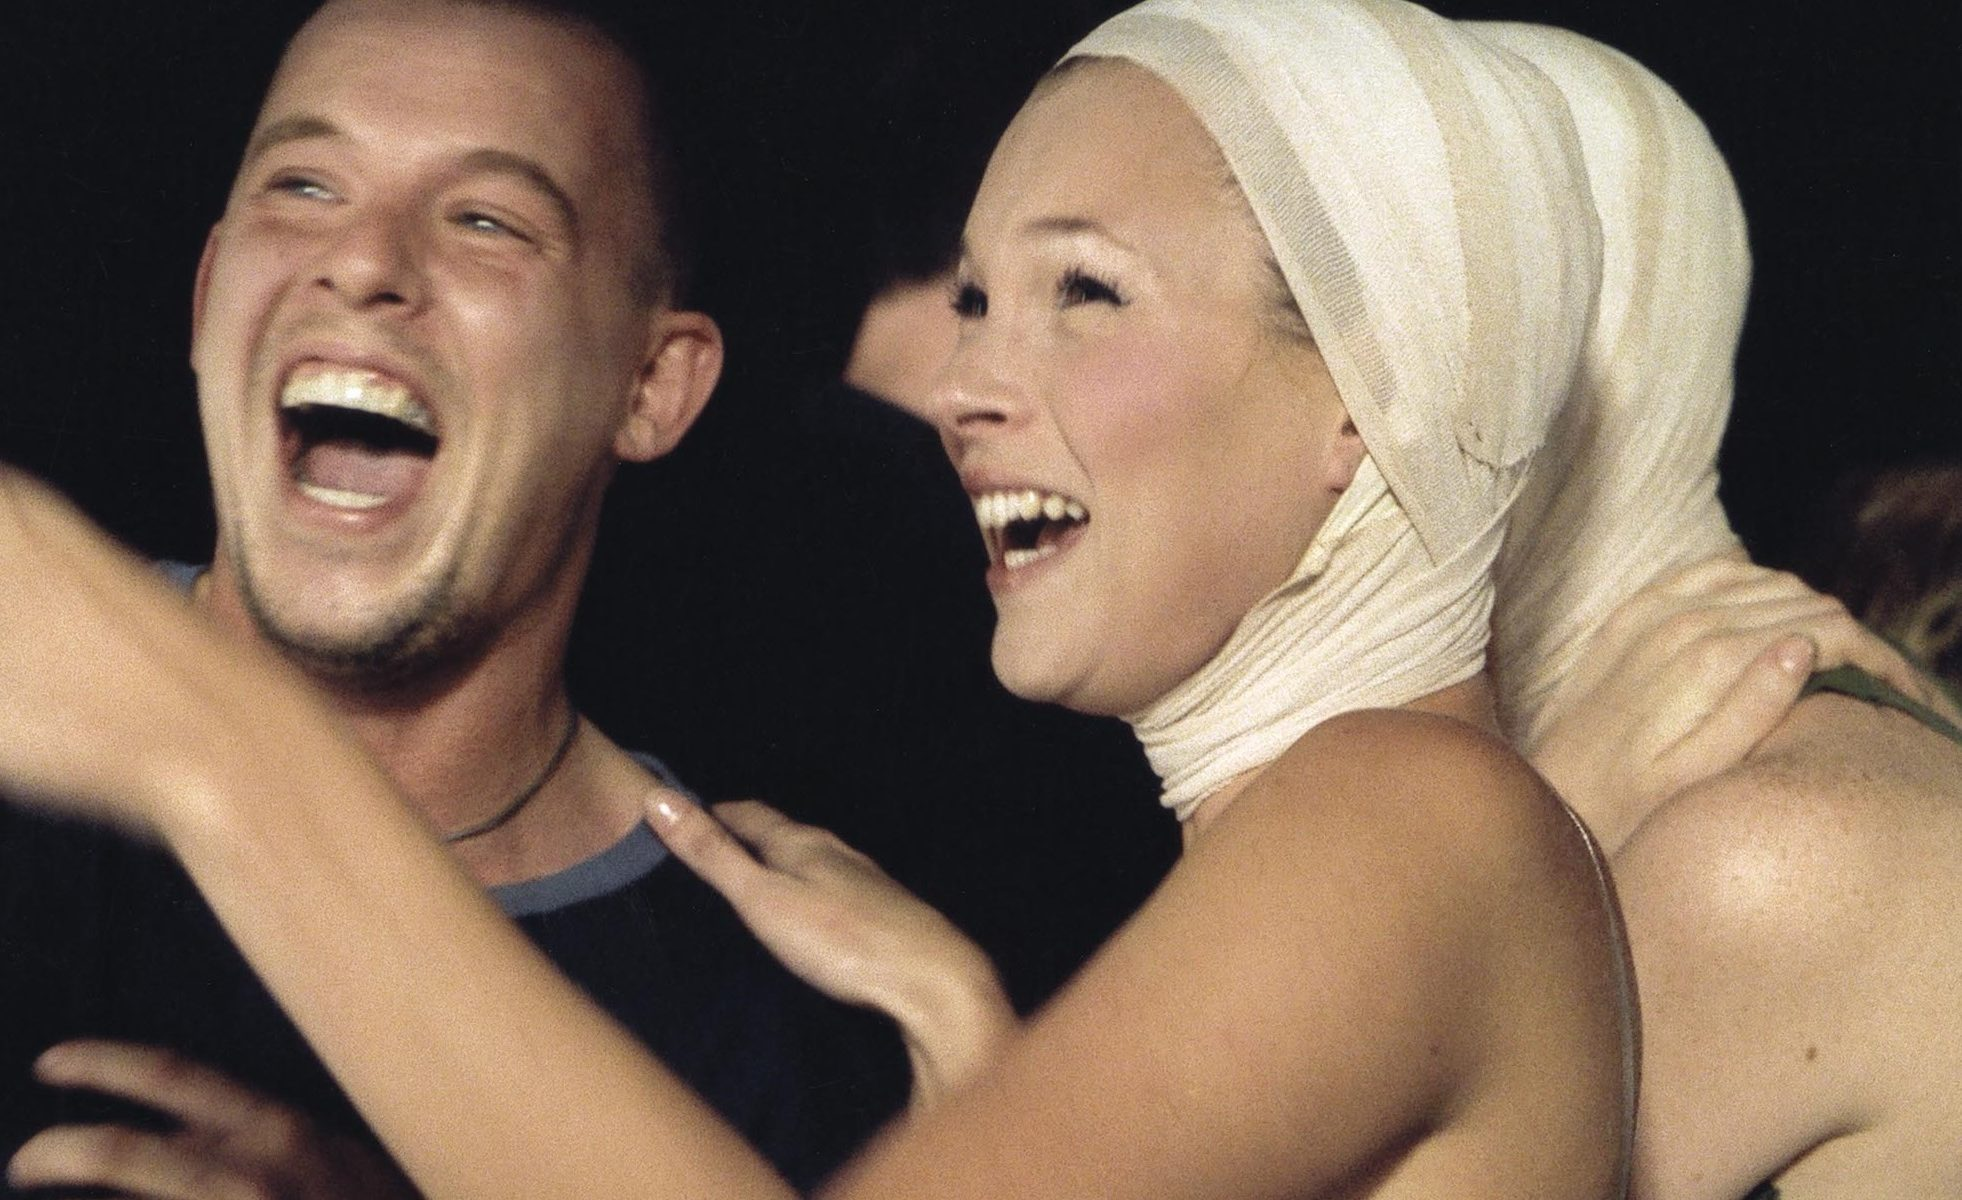 Lee McQueen i Kate Moss